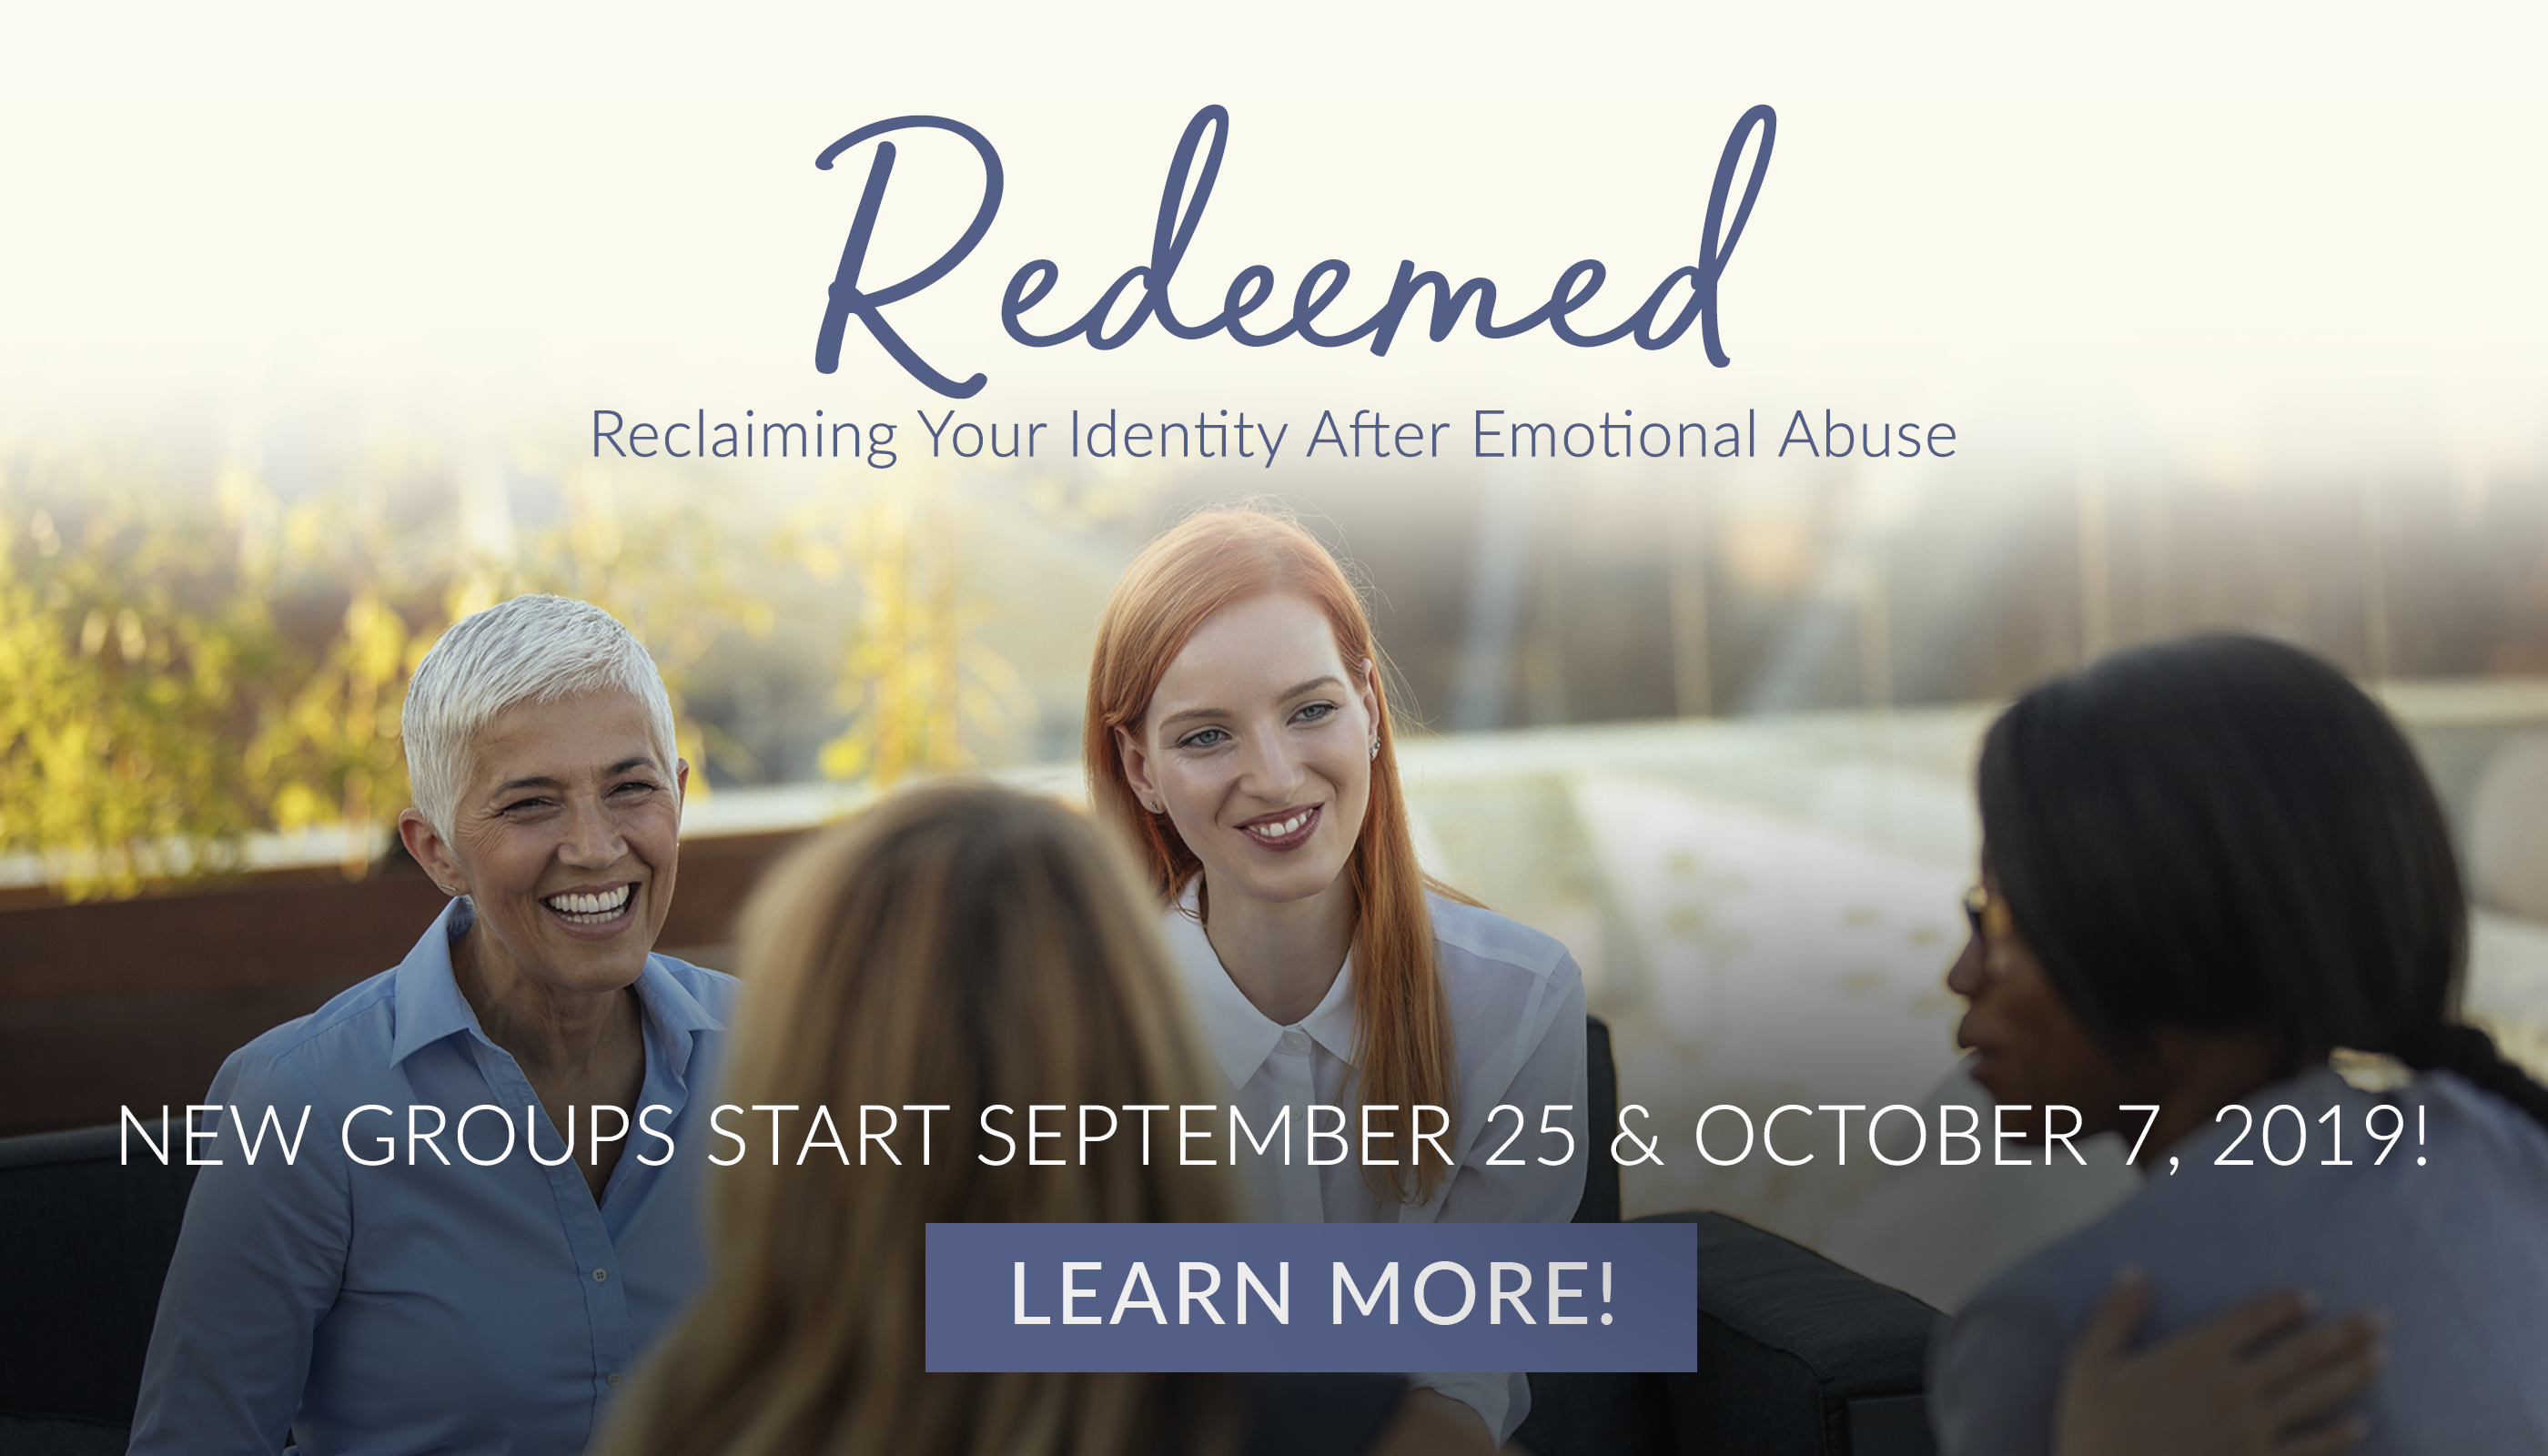 https://marriagerecoverycenter.com/wp-content/uploads/2019/07/Redeemed-Sept-and-Oct-2019.jpg